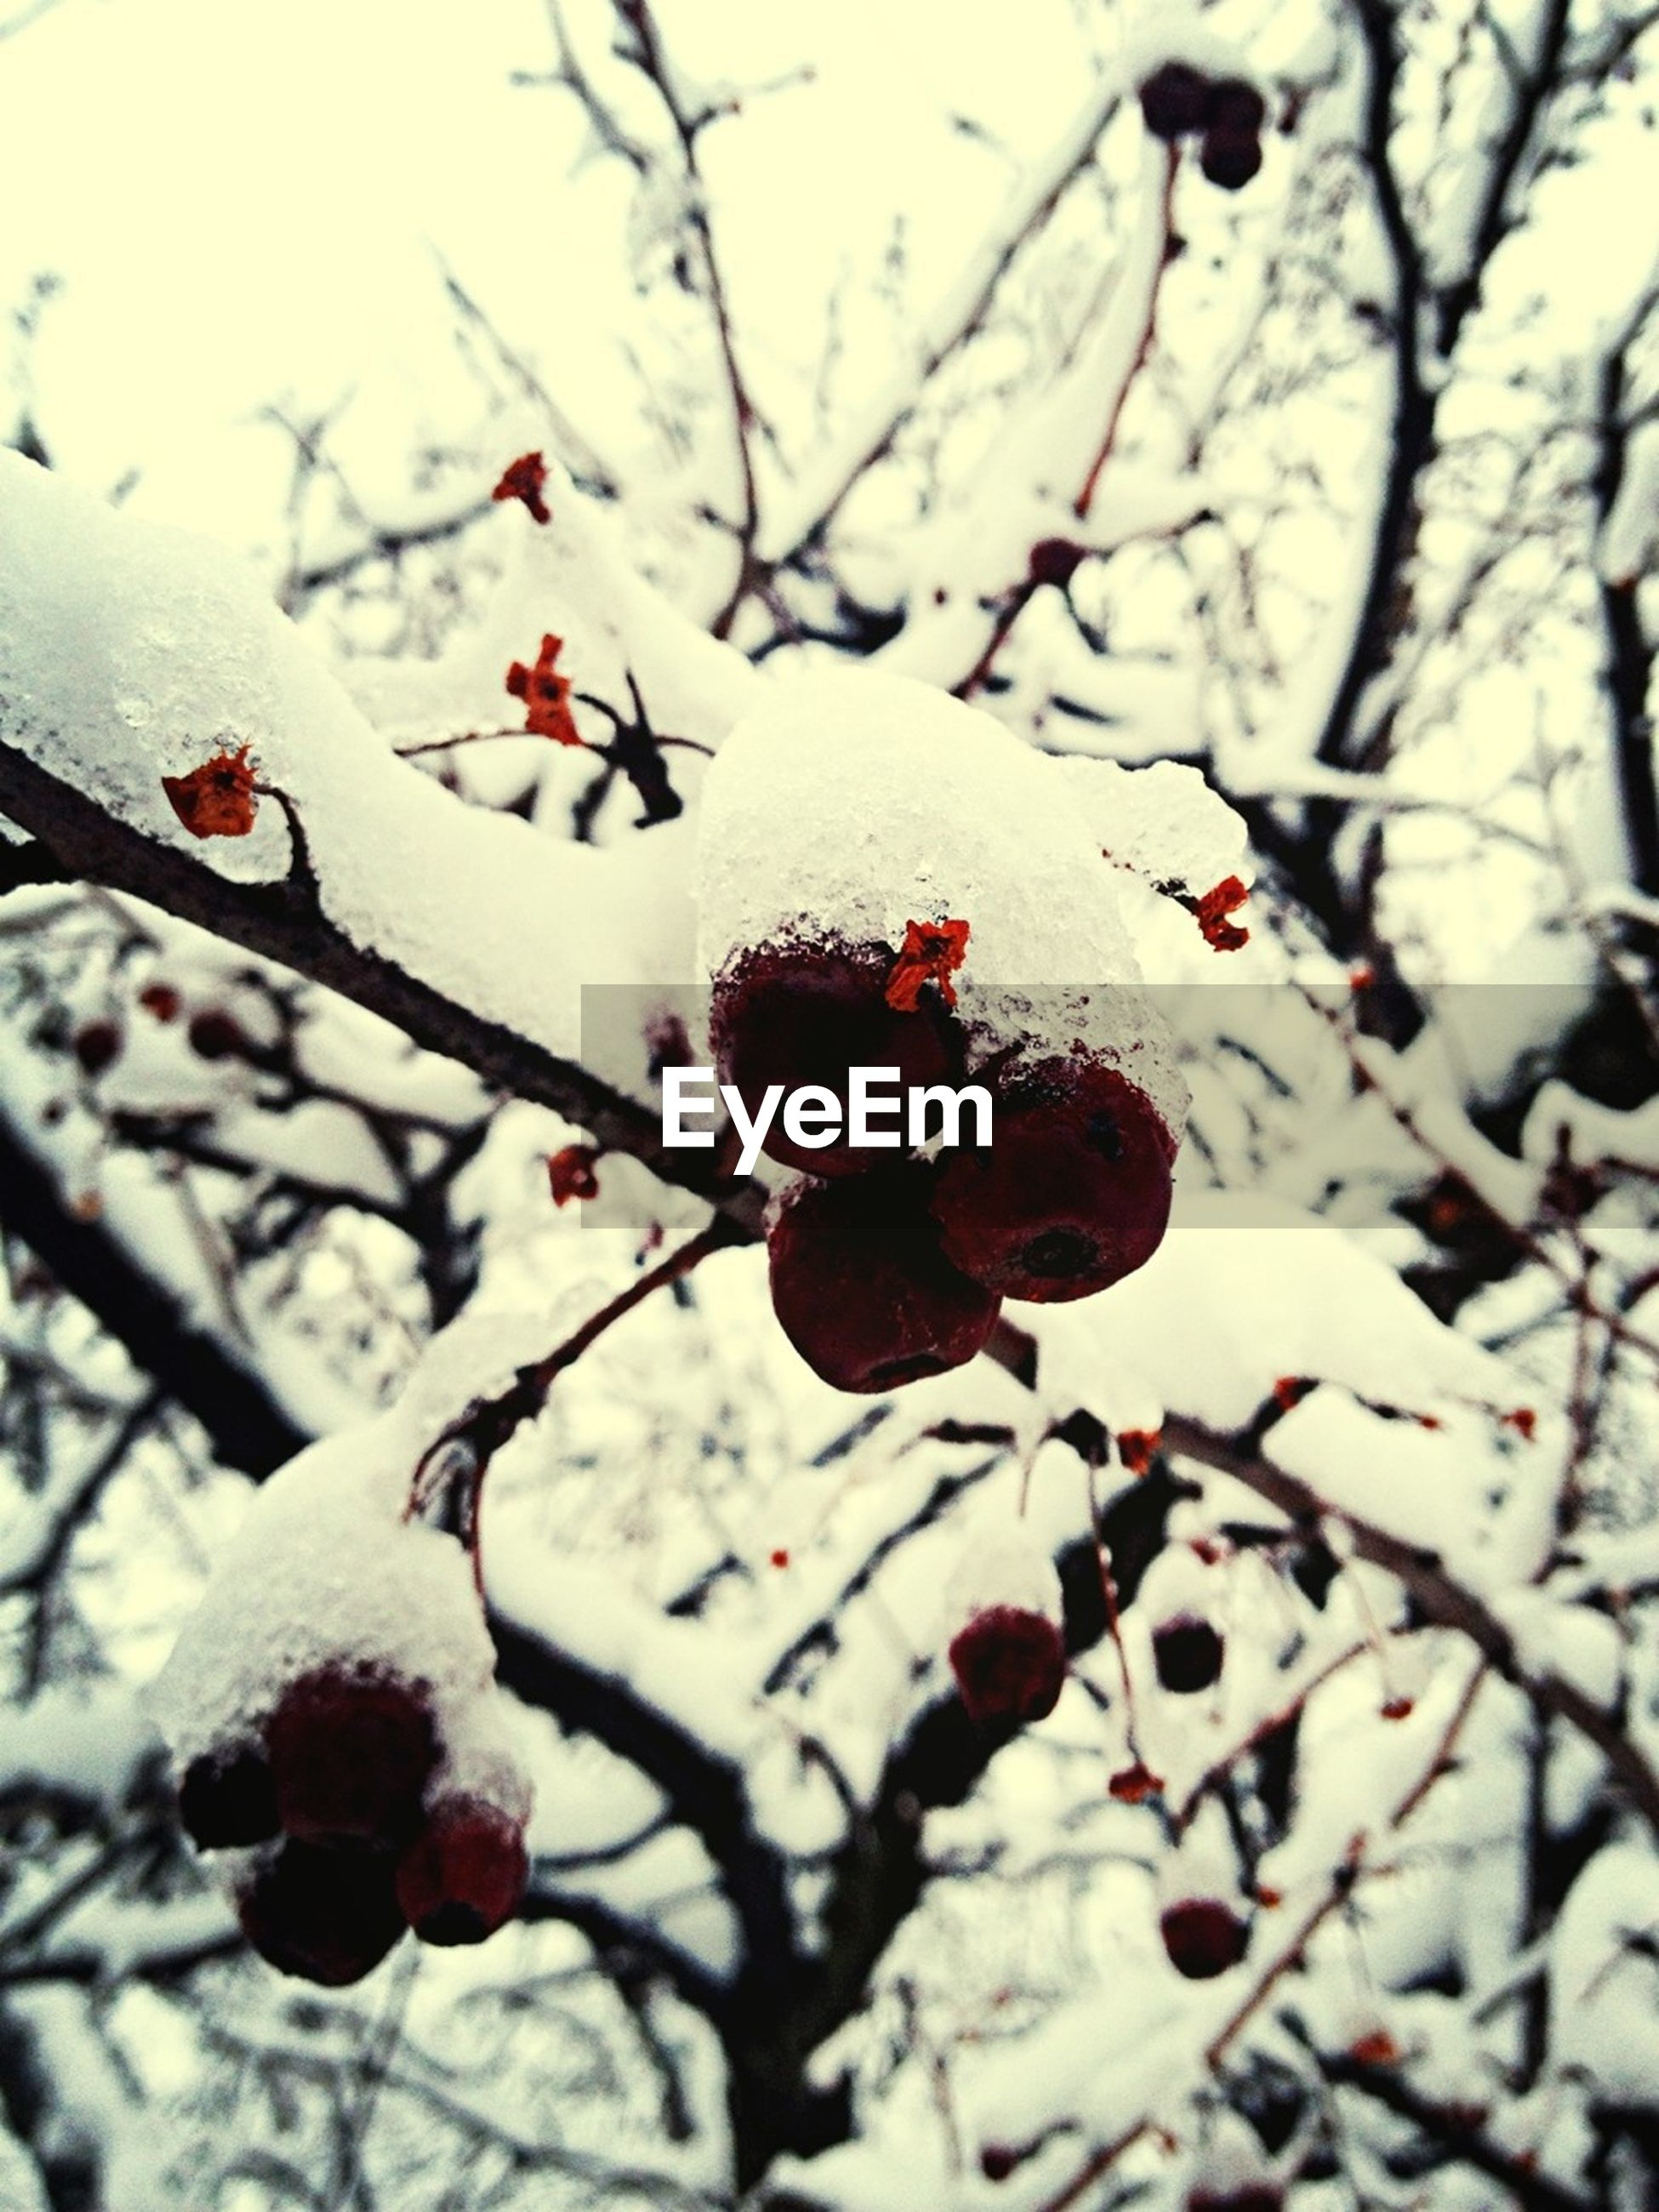 branch, winter, snow, cold temperature, tree, season, nature, twig, bare tree, focus on foreground, close-up, frozen, fruit, growth, red, freshness, weather, cherry tree, berry fruit, beauty in nature